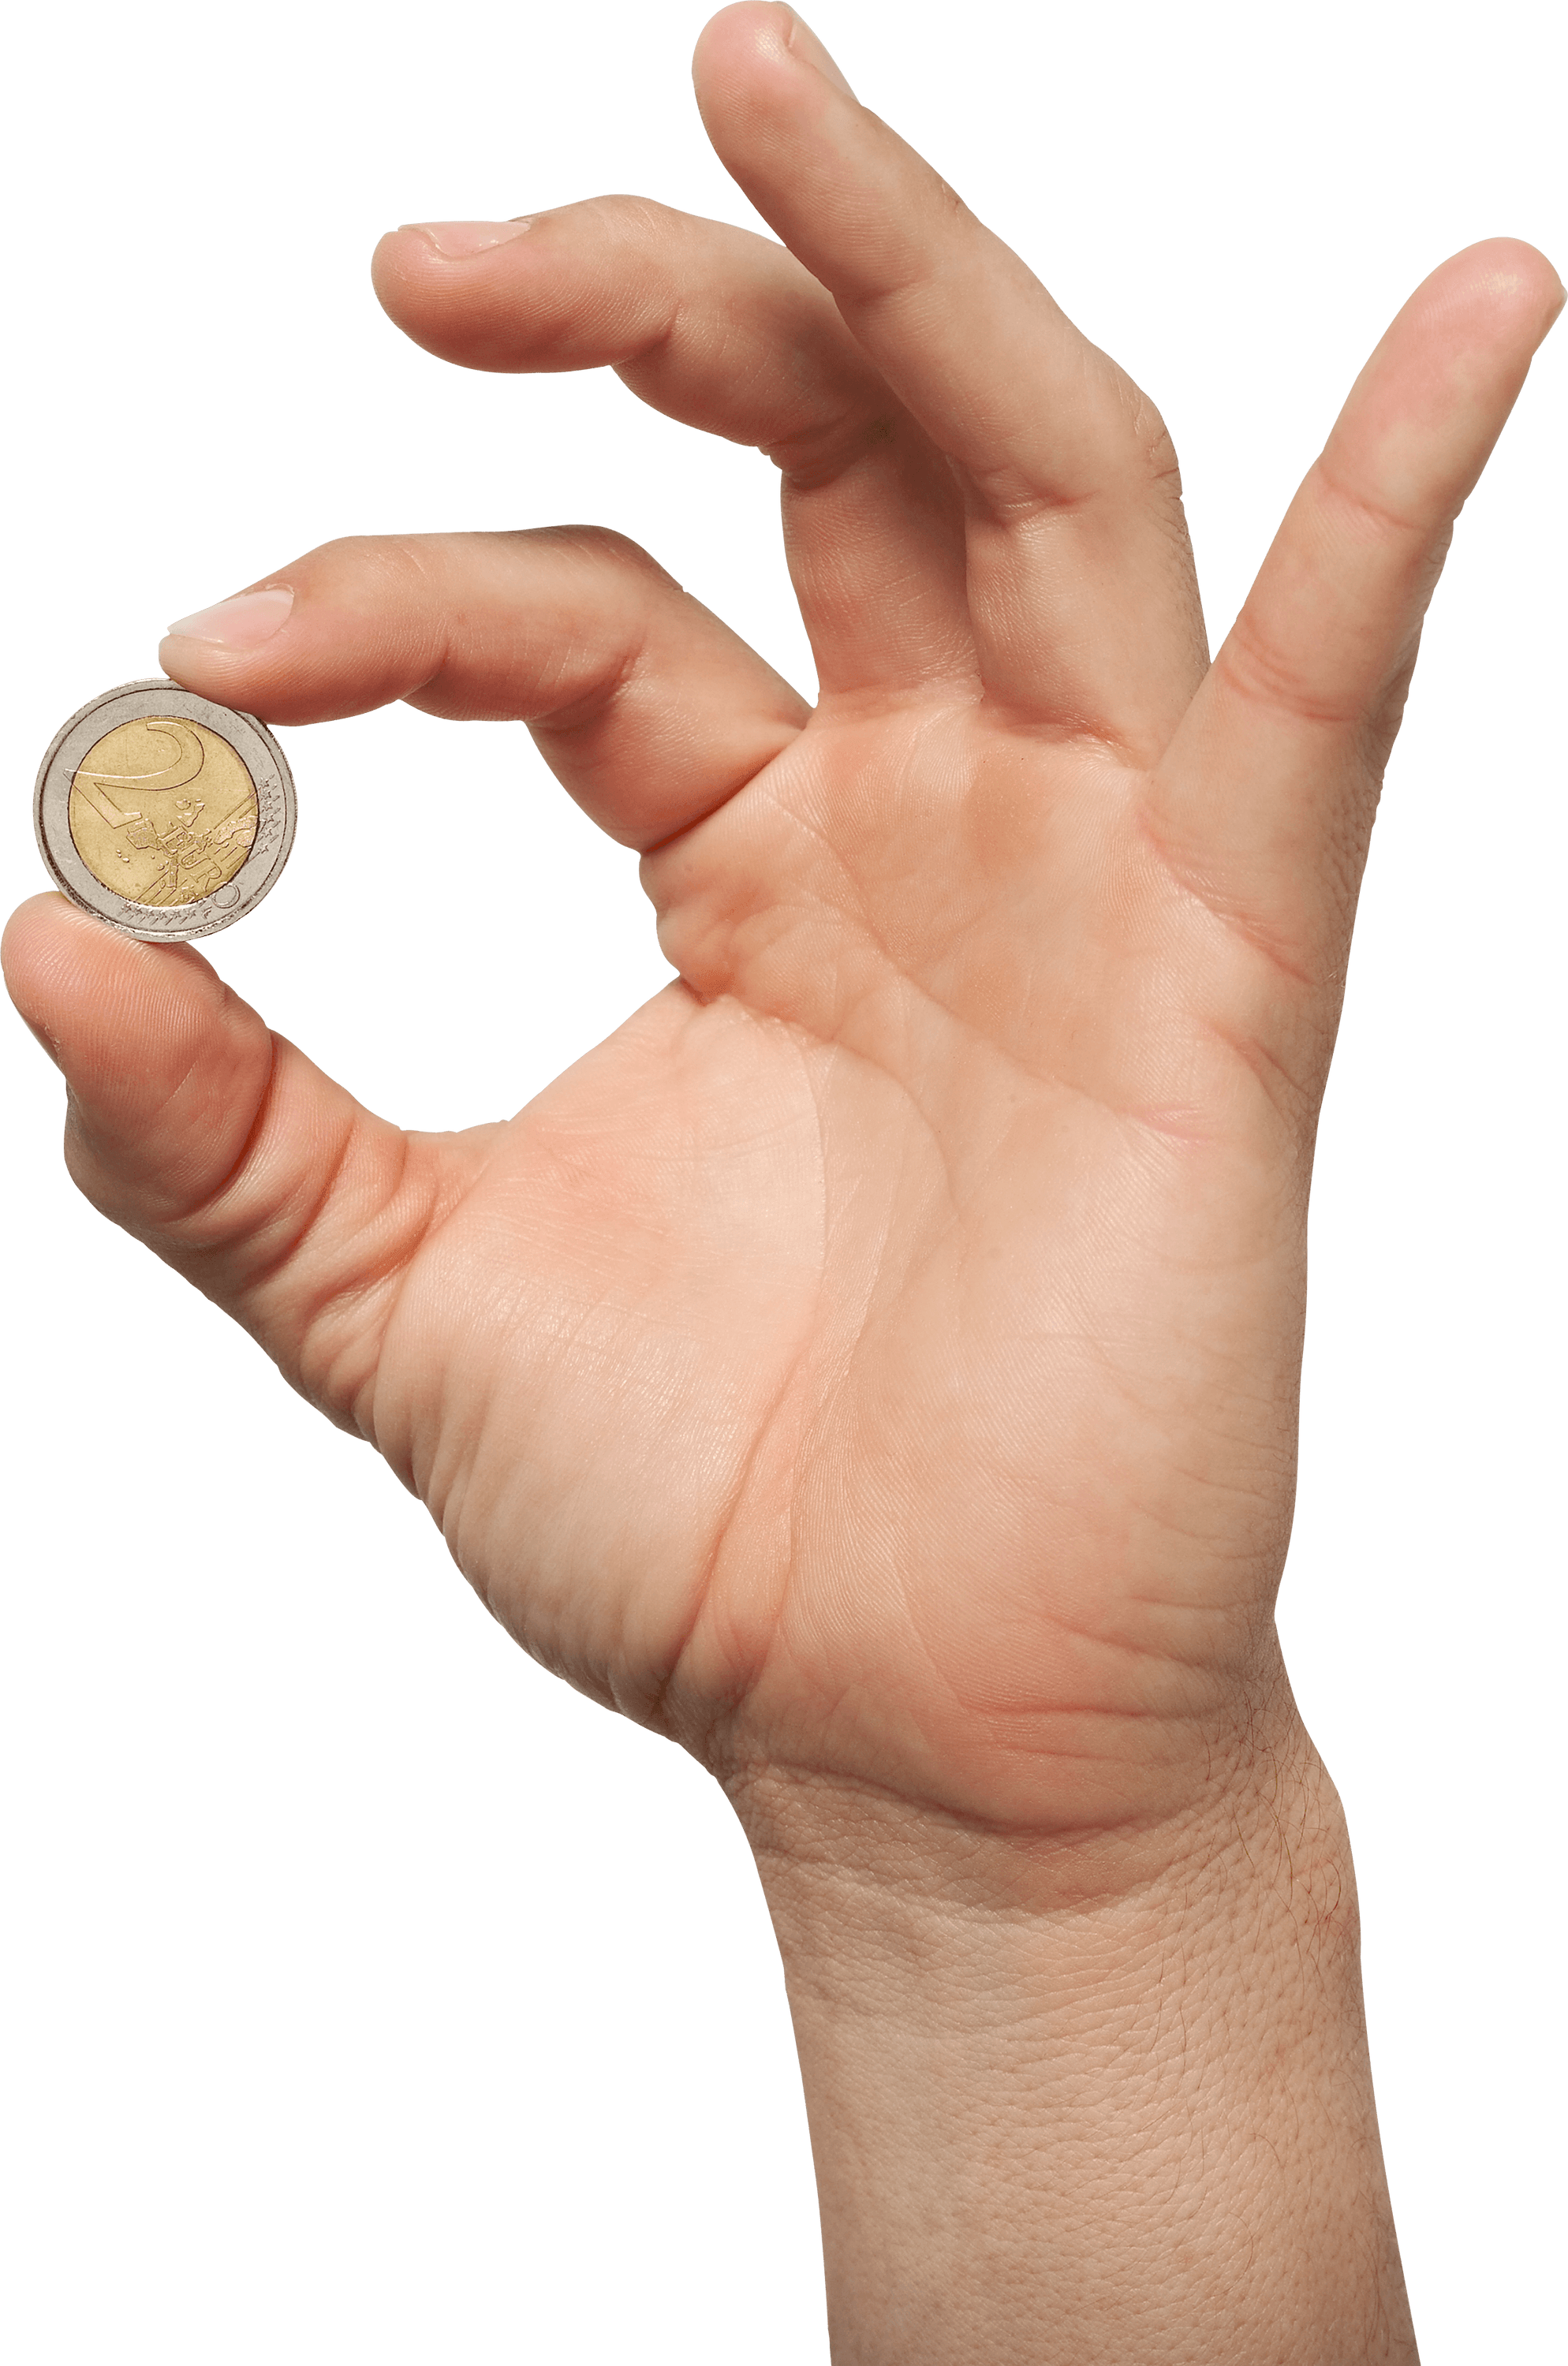 Hand holding out money clipart banner freeuse Photo Hand Grapping transparent PNG - StickPNG banner freeuse